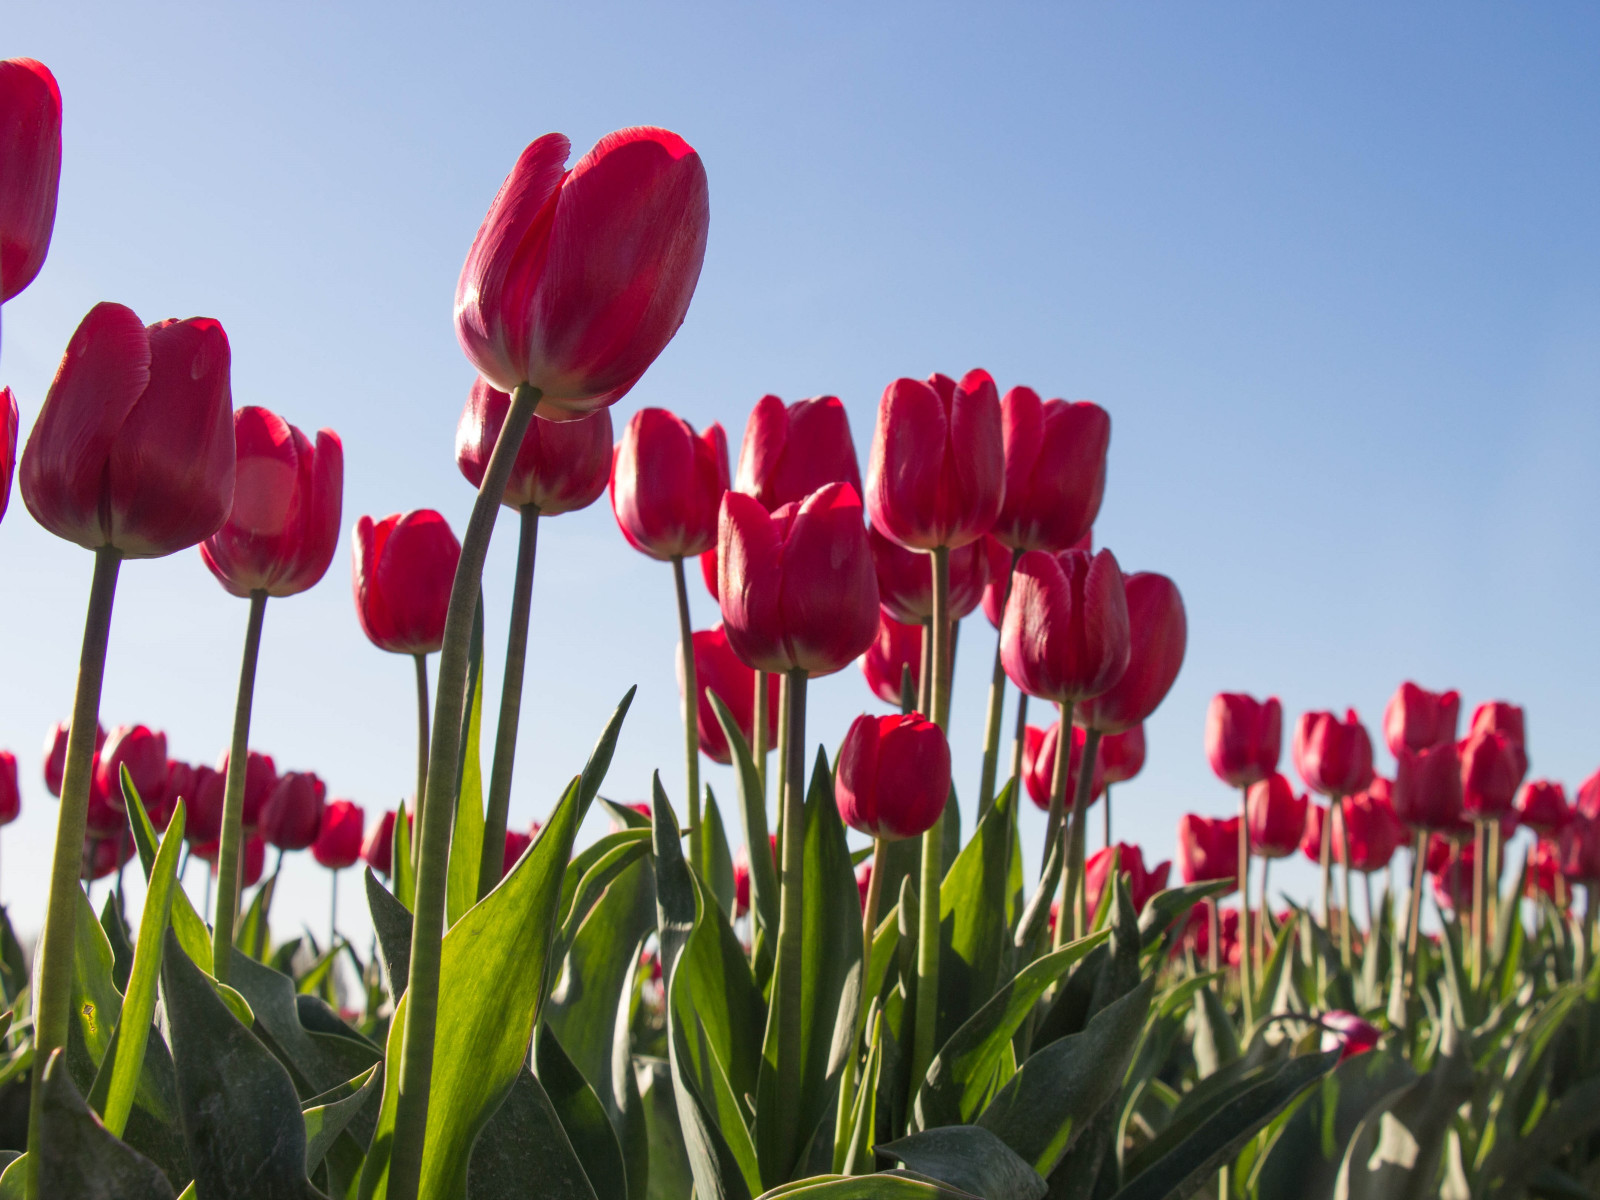 Red tulips wallpaper 1600x1200